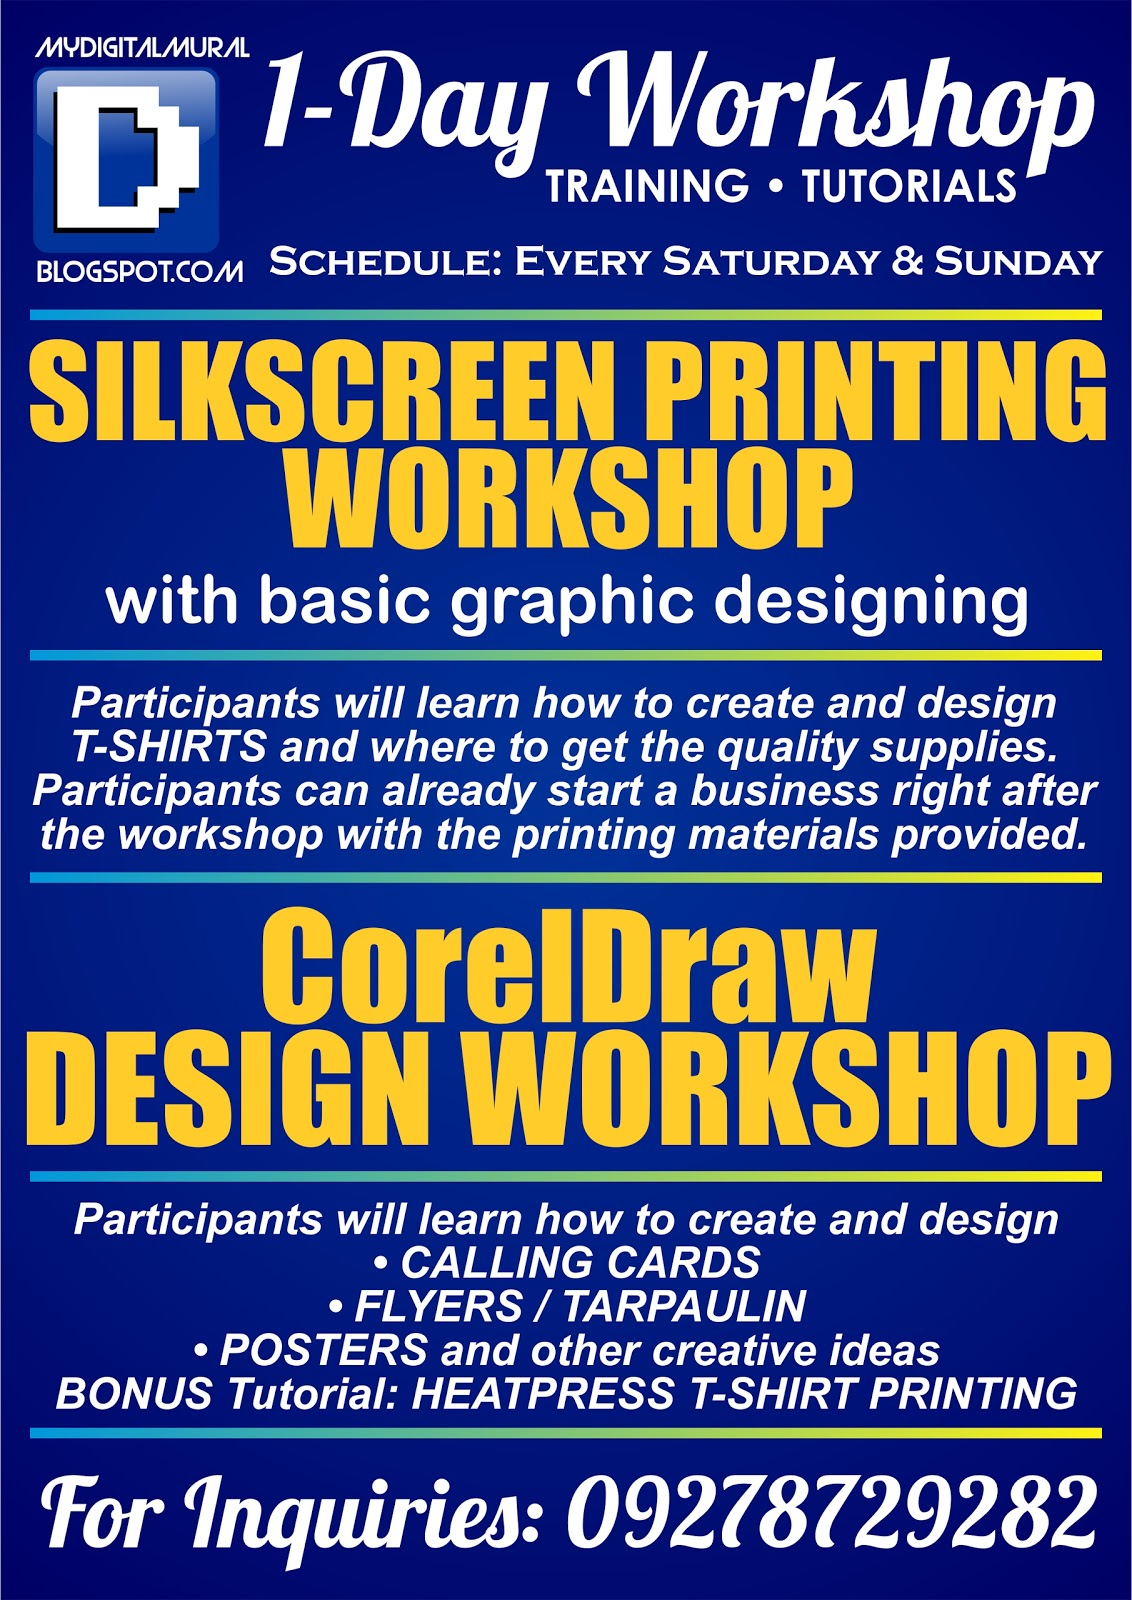 Corel draw vs photoshop for t shirt design - For People And Creative Ideas Who Are Very Much Interested In Converting Ideas Into Opportunities And Turn Creativity To Something Much Of A Value This